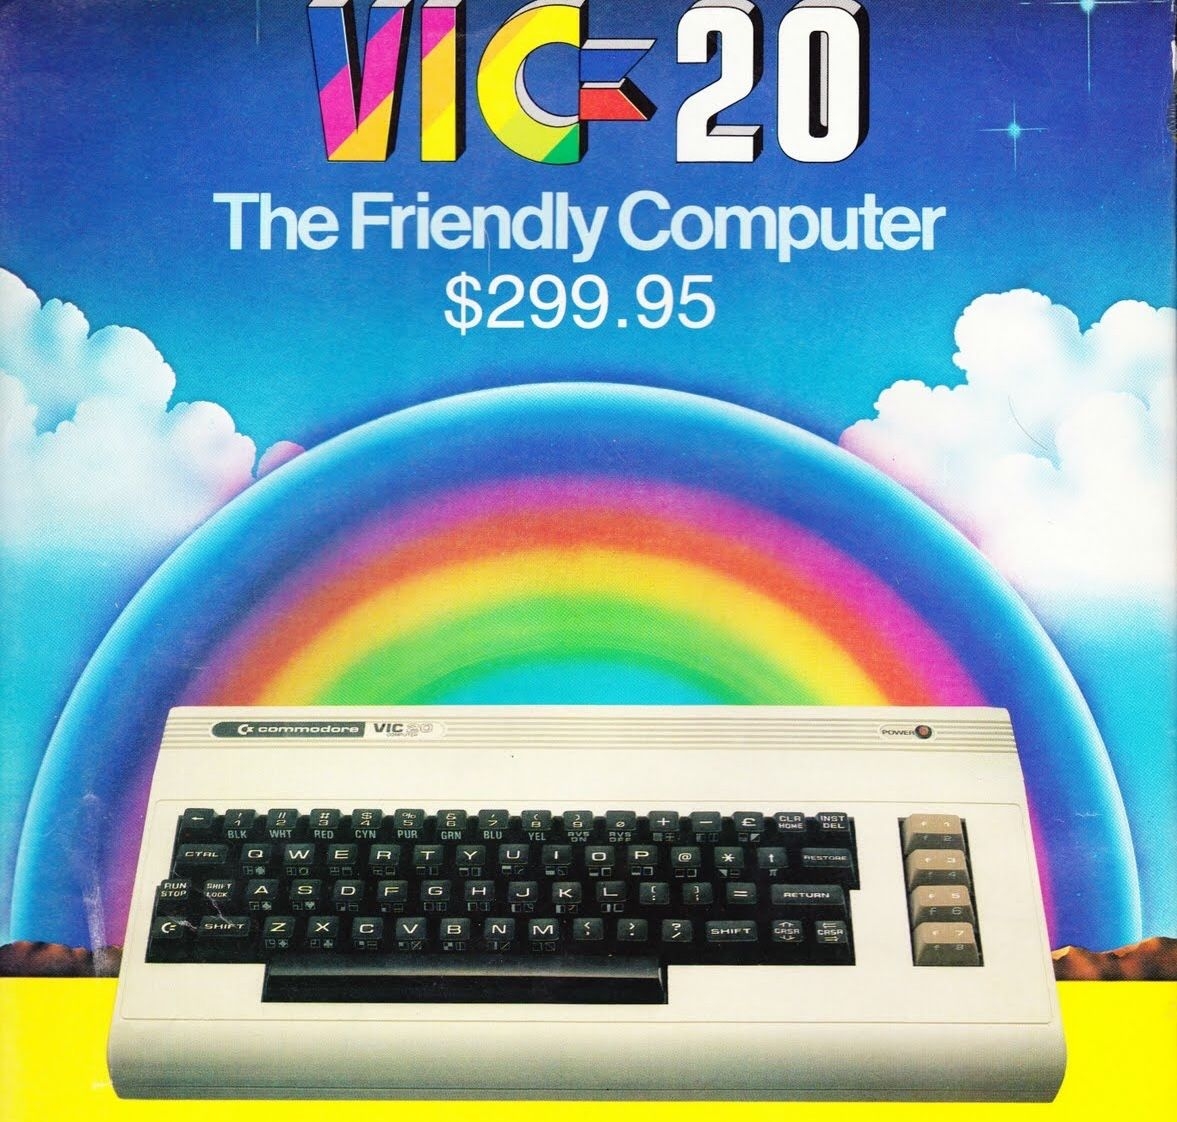 The Vic 20 Was An 8 Bit Home Computer Which Was Sold By Commodore